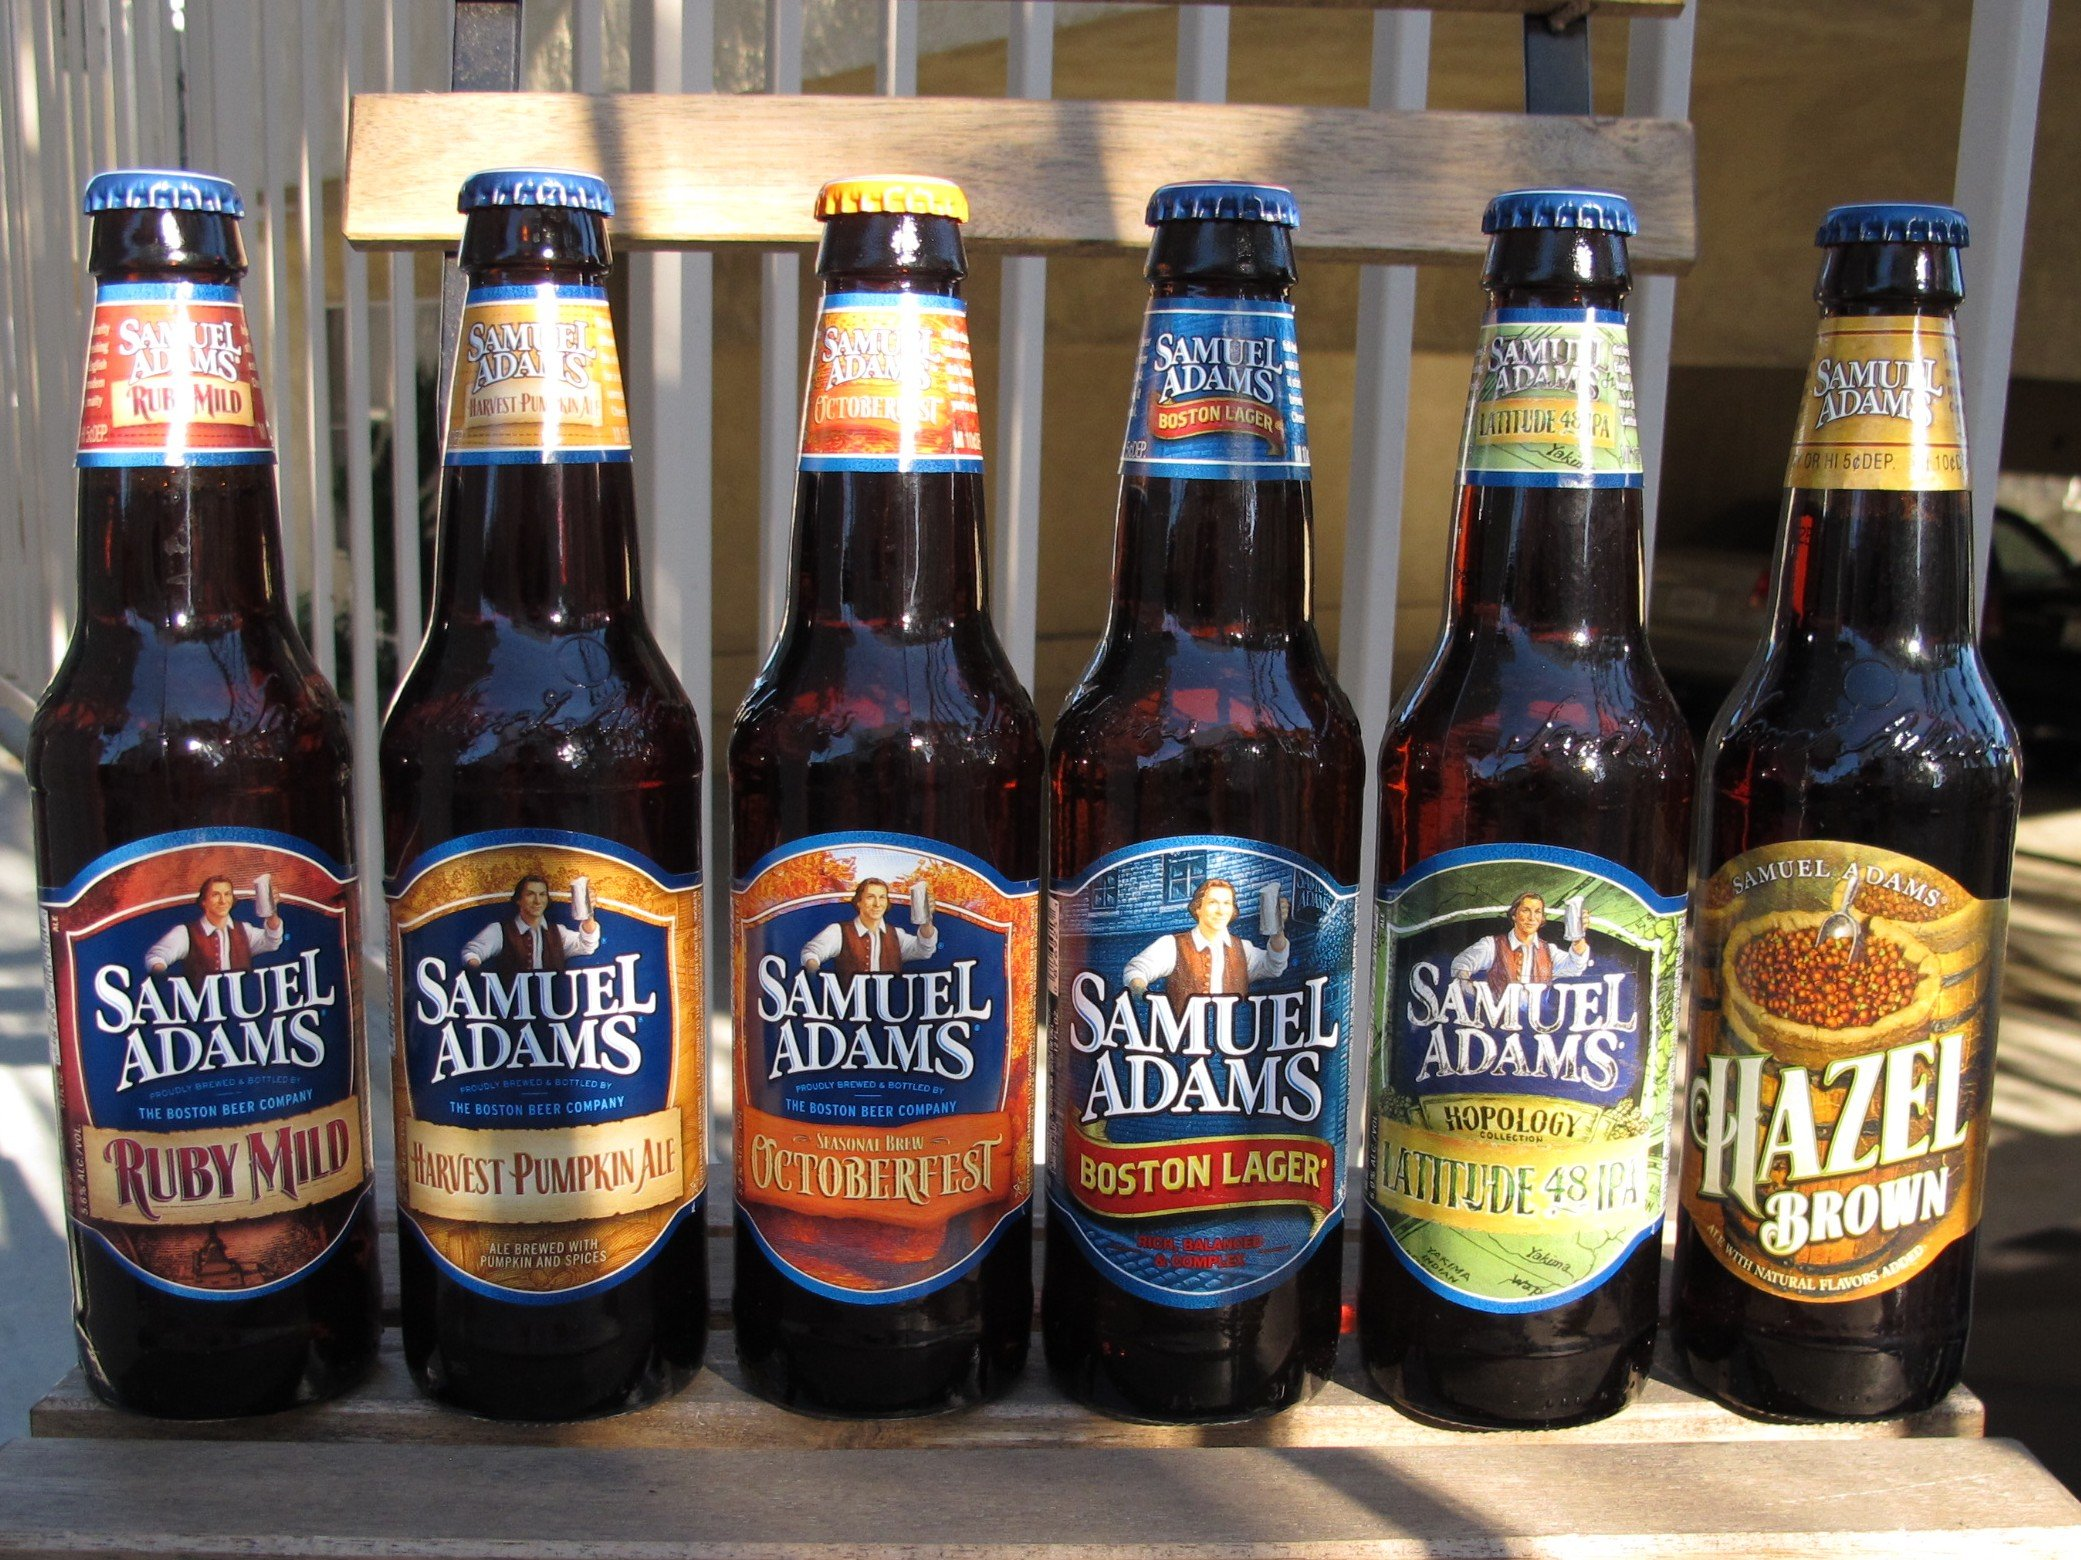 SAMUEL ADAMS BEER alcohol (20)